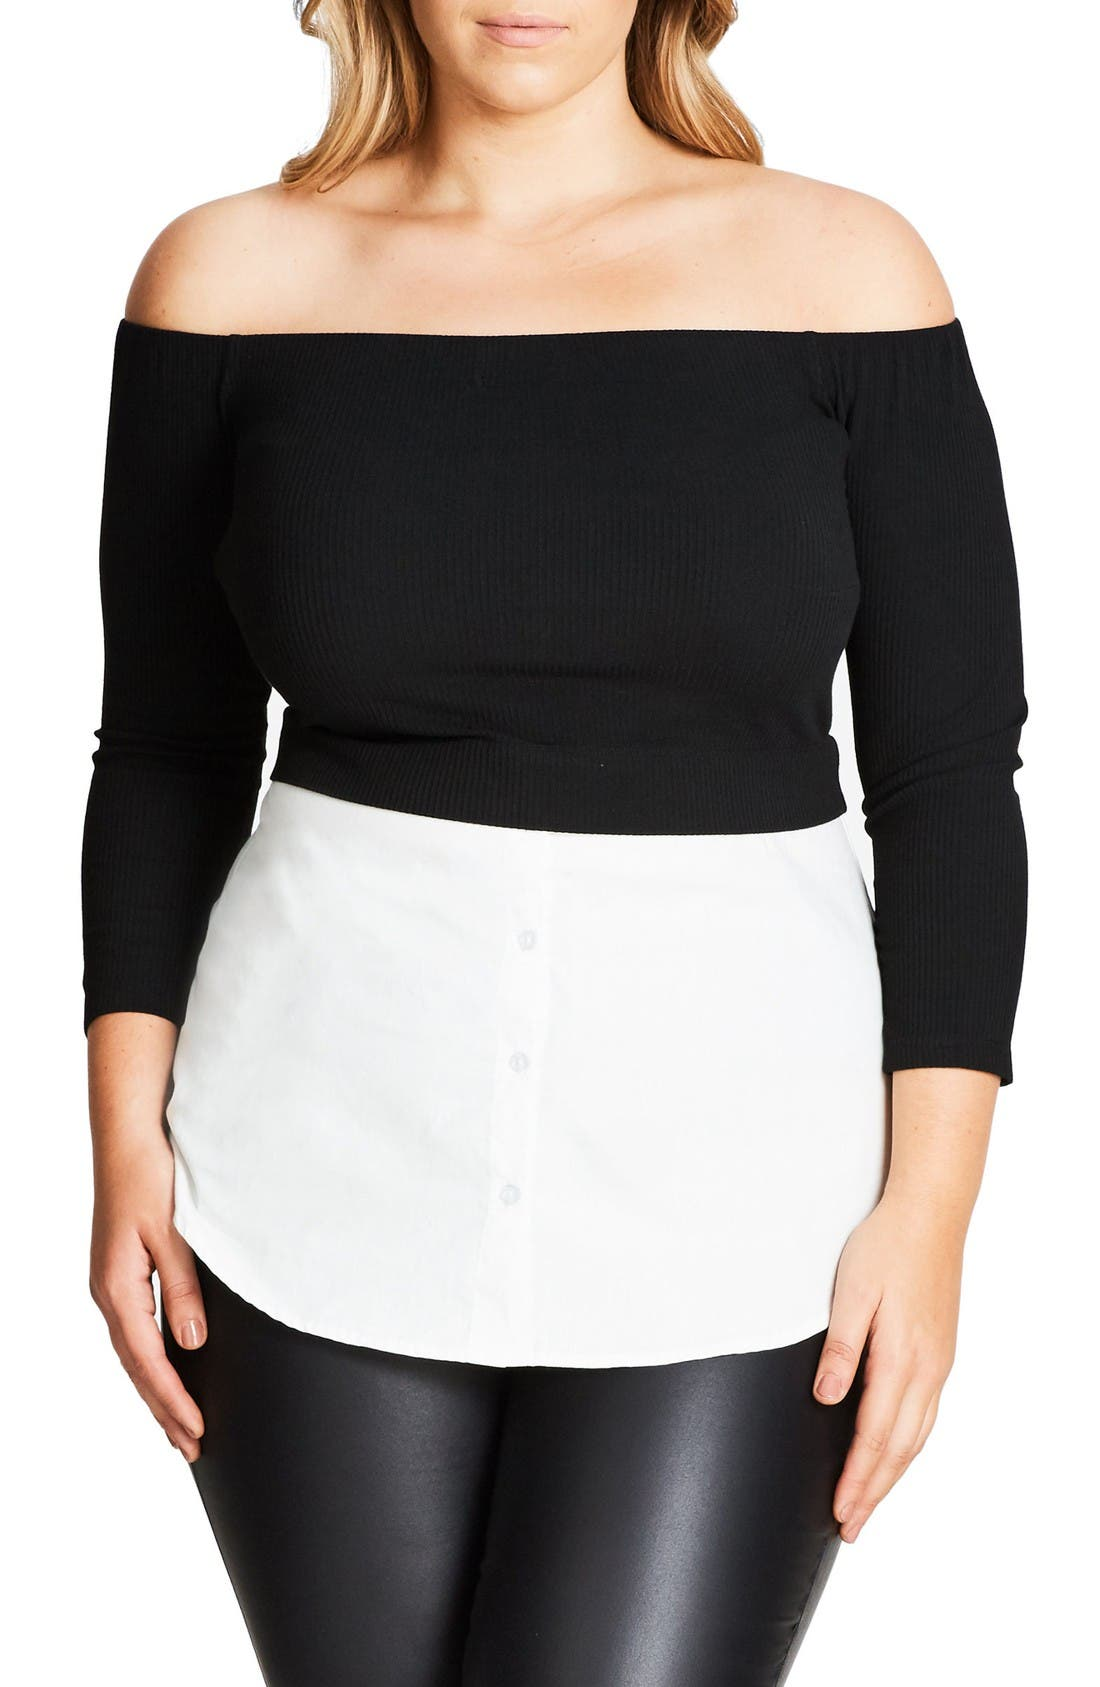 Main Image - City Chic Layer Look Off the Shoulder Top (Plus Size)